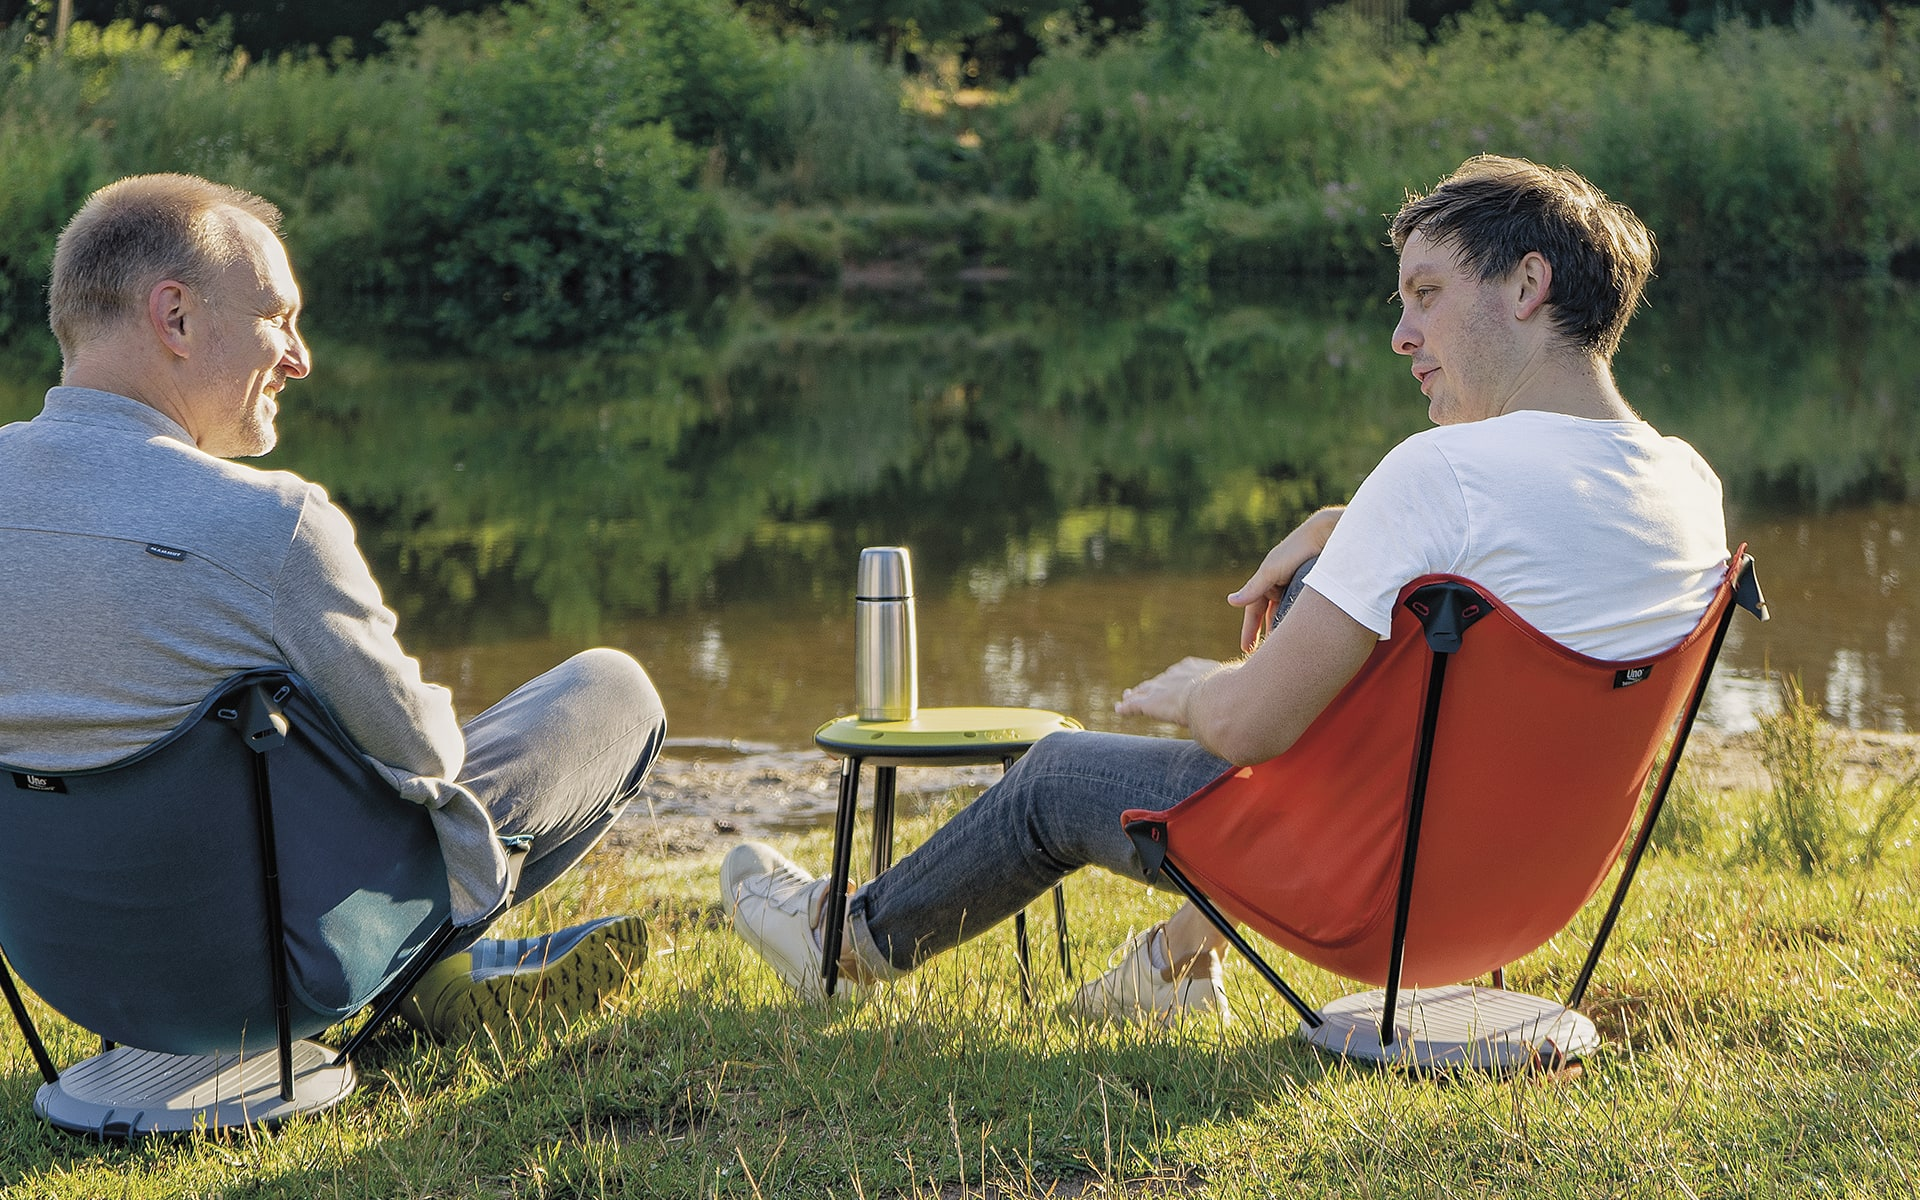 Two men sitting in Therm-a-Rest Uno outdoor chairs by ITO Design near river, using a collapsed Therm-a-Rest Uno outdoor chair as a side table and talking to each other